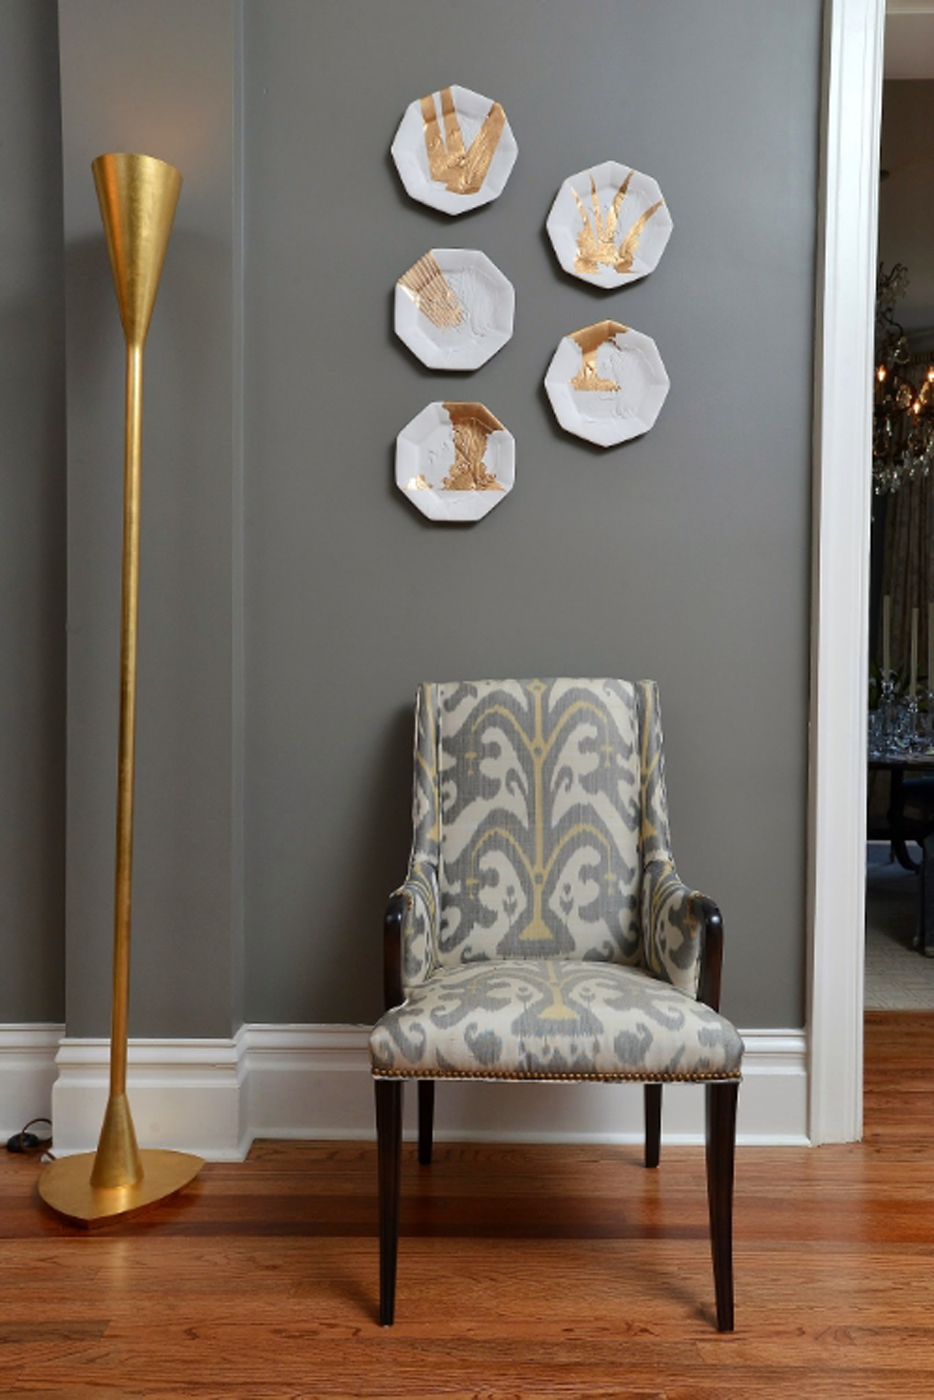 Upholstered chair and torchiere grouped with hand cast plates designed by artist Jedediah Morfit | Savage Interior Design